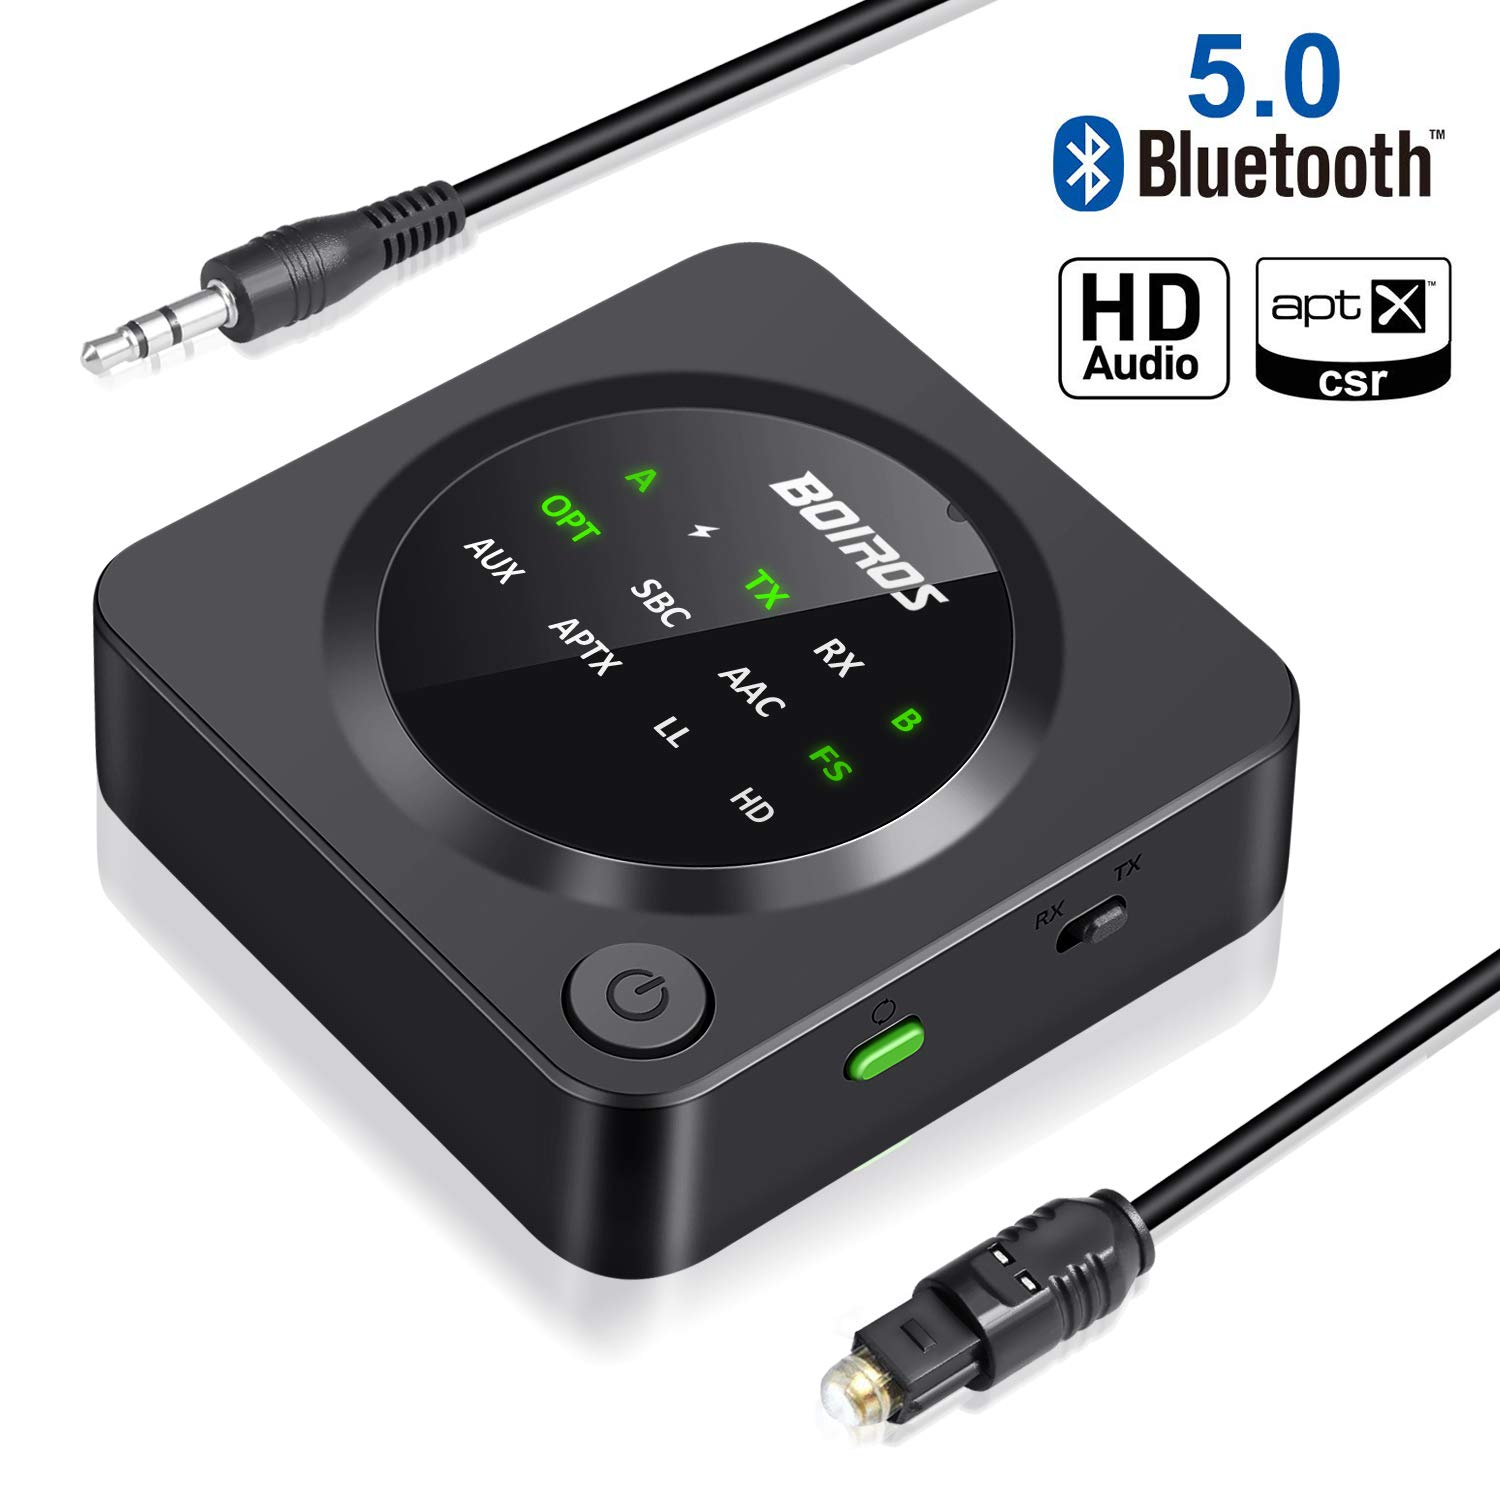 Bluetooth 5.0 Transmitter Receiver, BOIROS 2 in 1 Digital Optical Wireless 3.5mm Aux Audio Adapter, aptX HD, Low Latency Pair 2 Headphones Speakers at Once for TV PC Home Stereo System by BOIROS